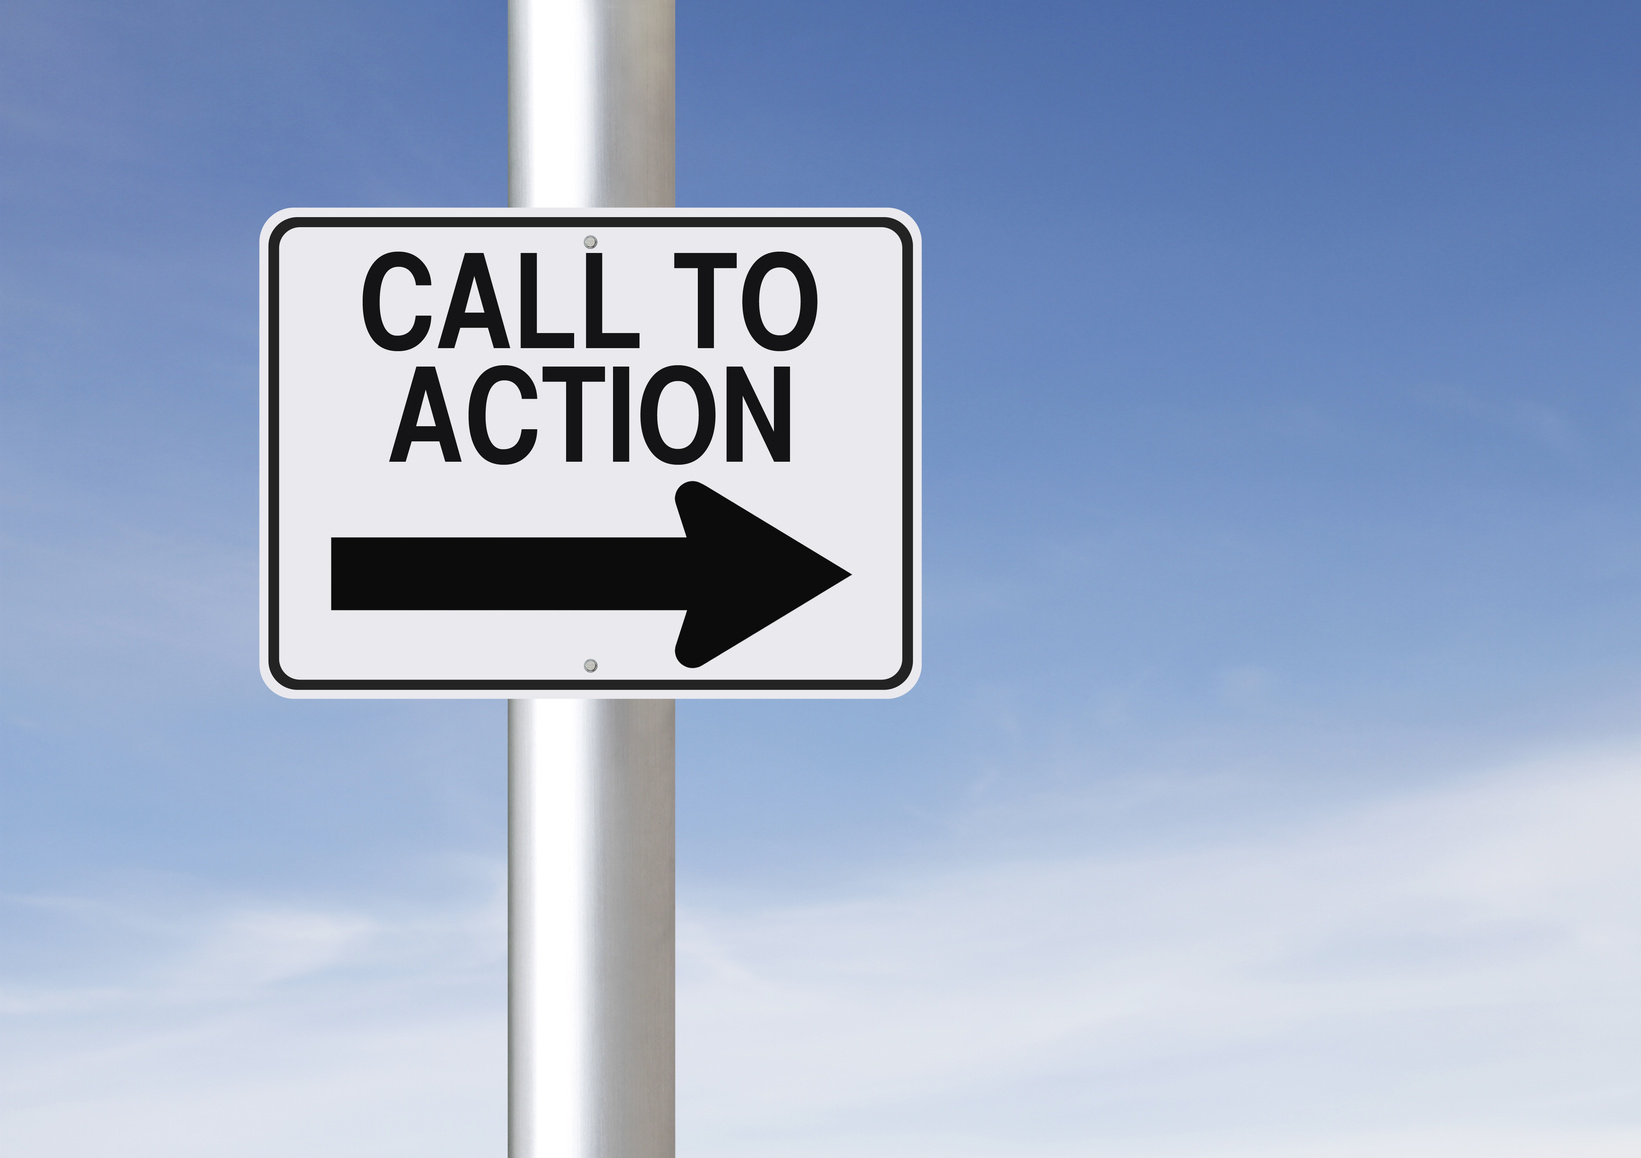 Want your Call to action to be effective? Read on!